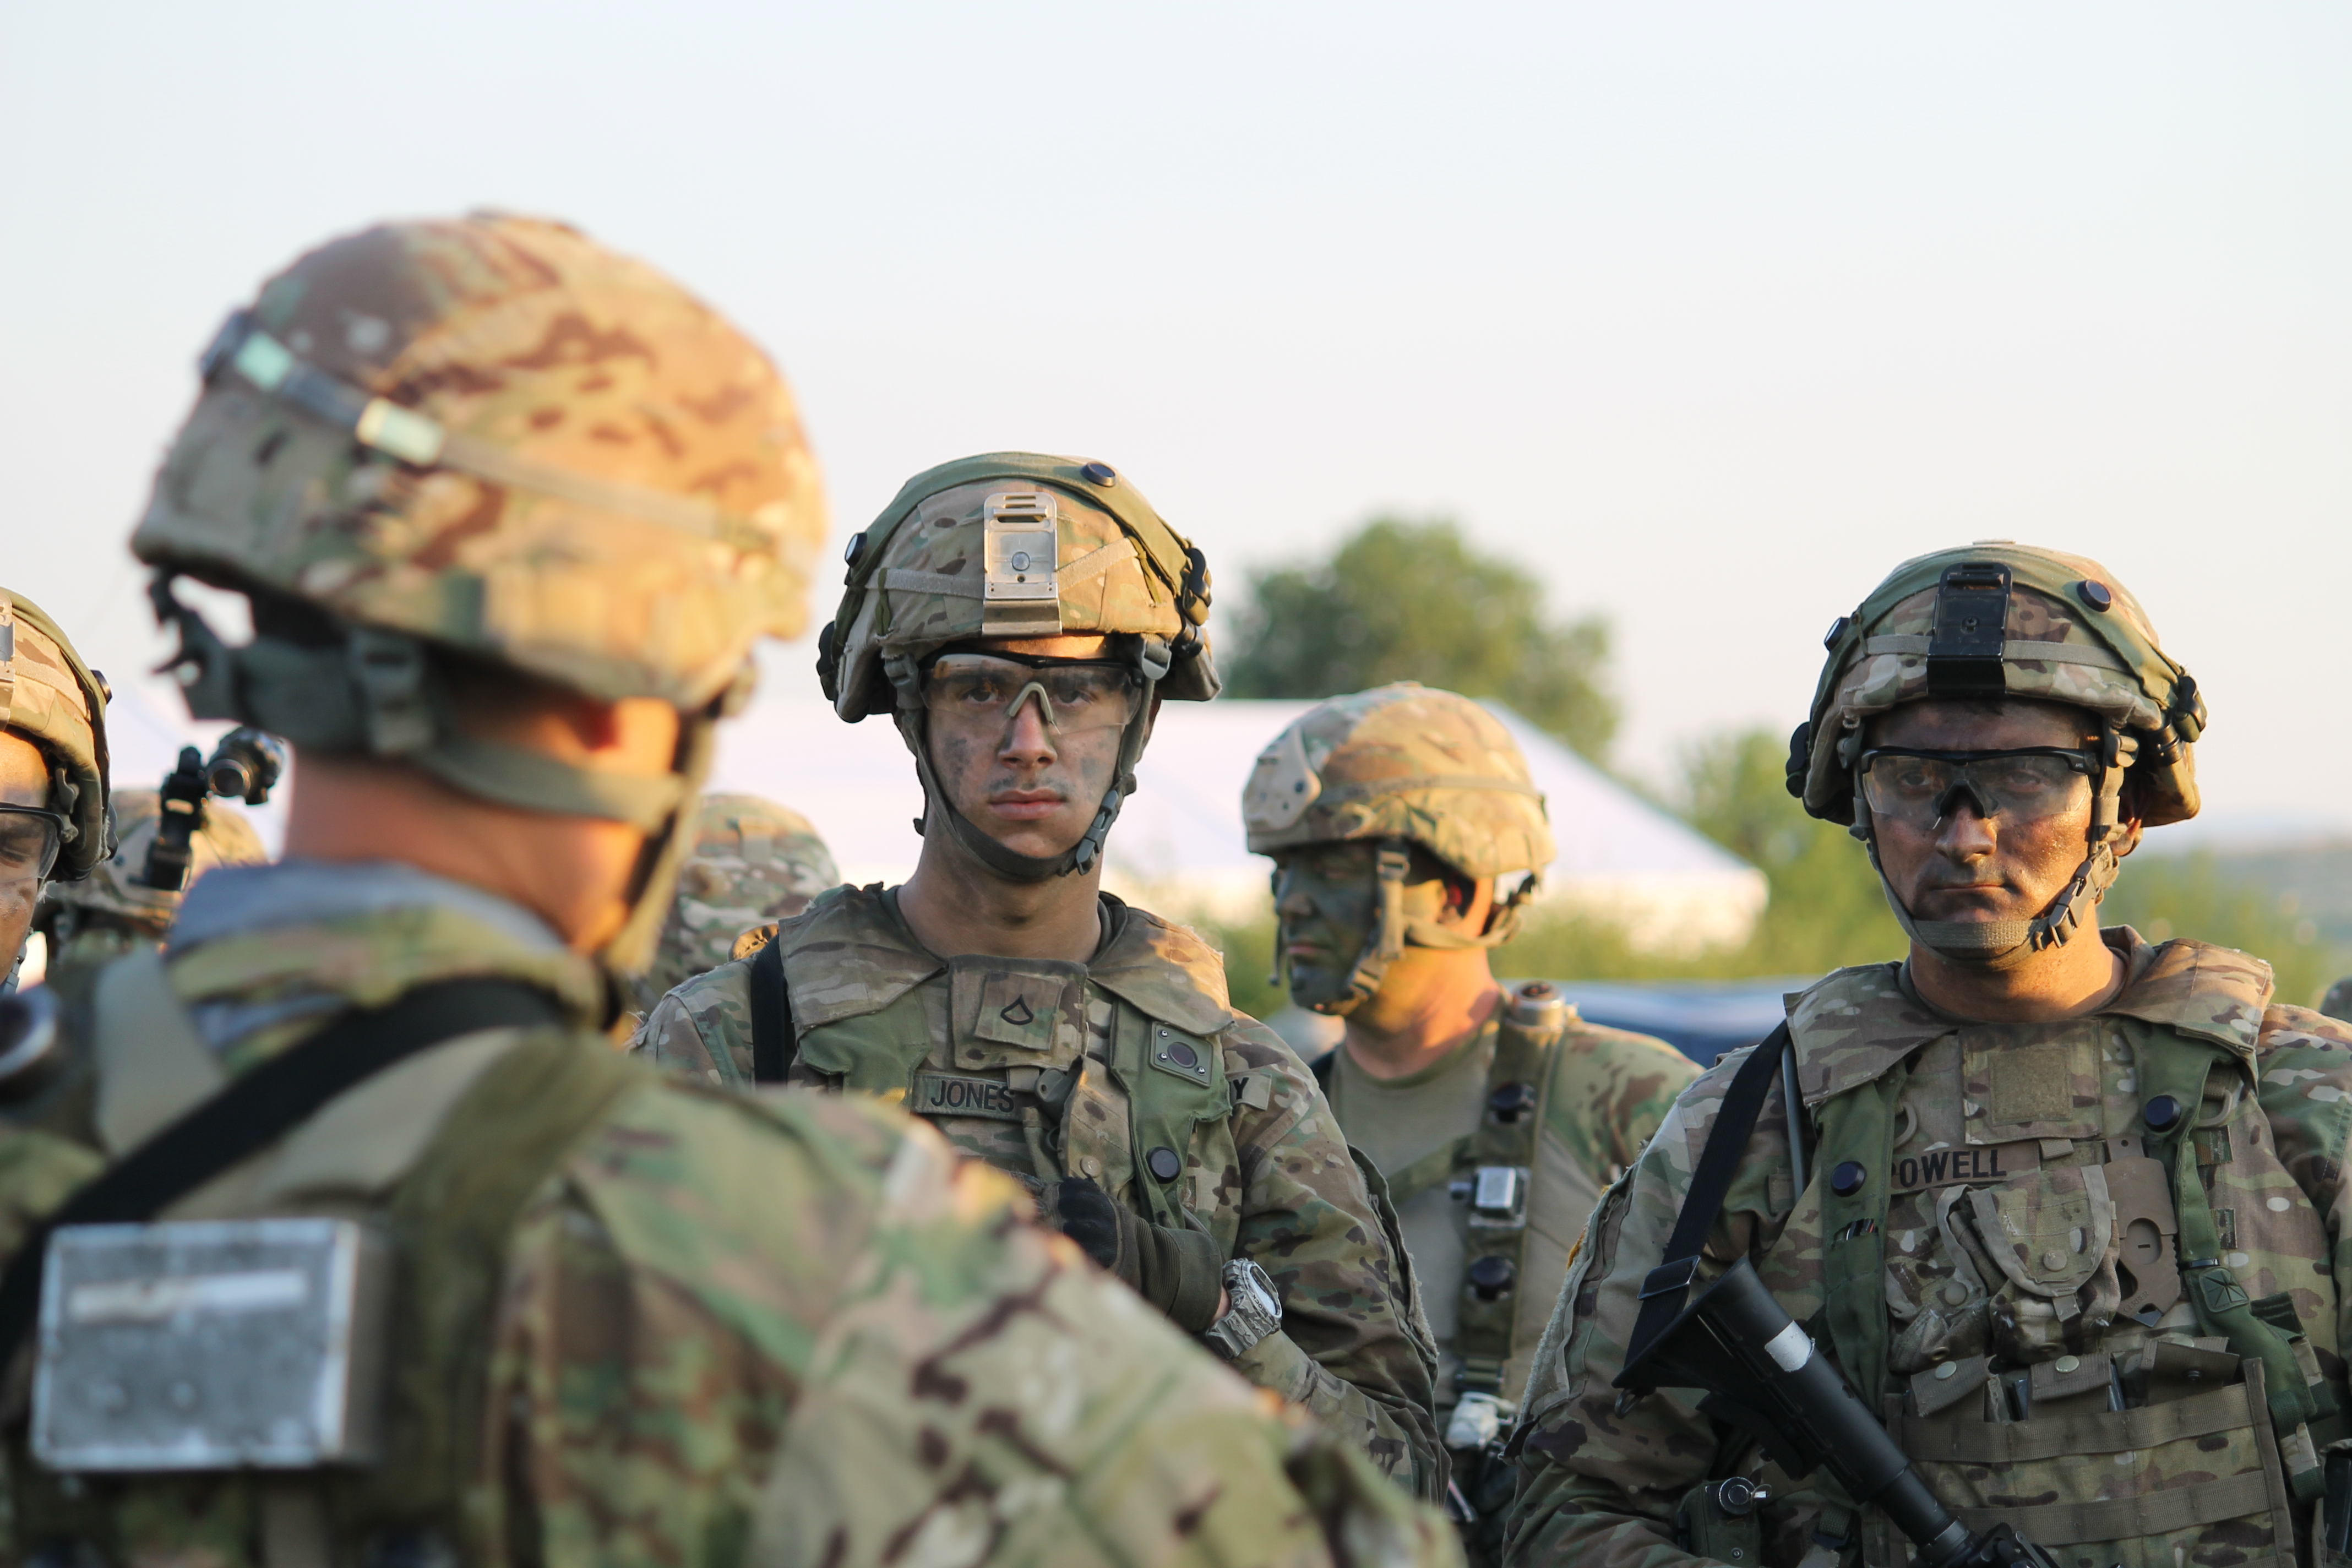 The U.S. Stryker unit listens to instructions before loading and heading over to the airfield. (Jen Judson/Staff)